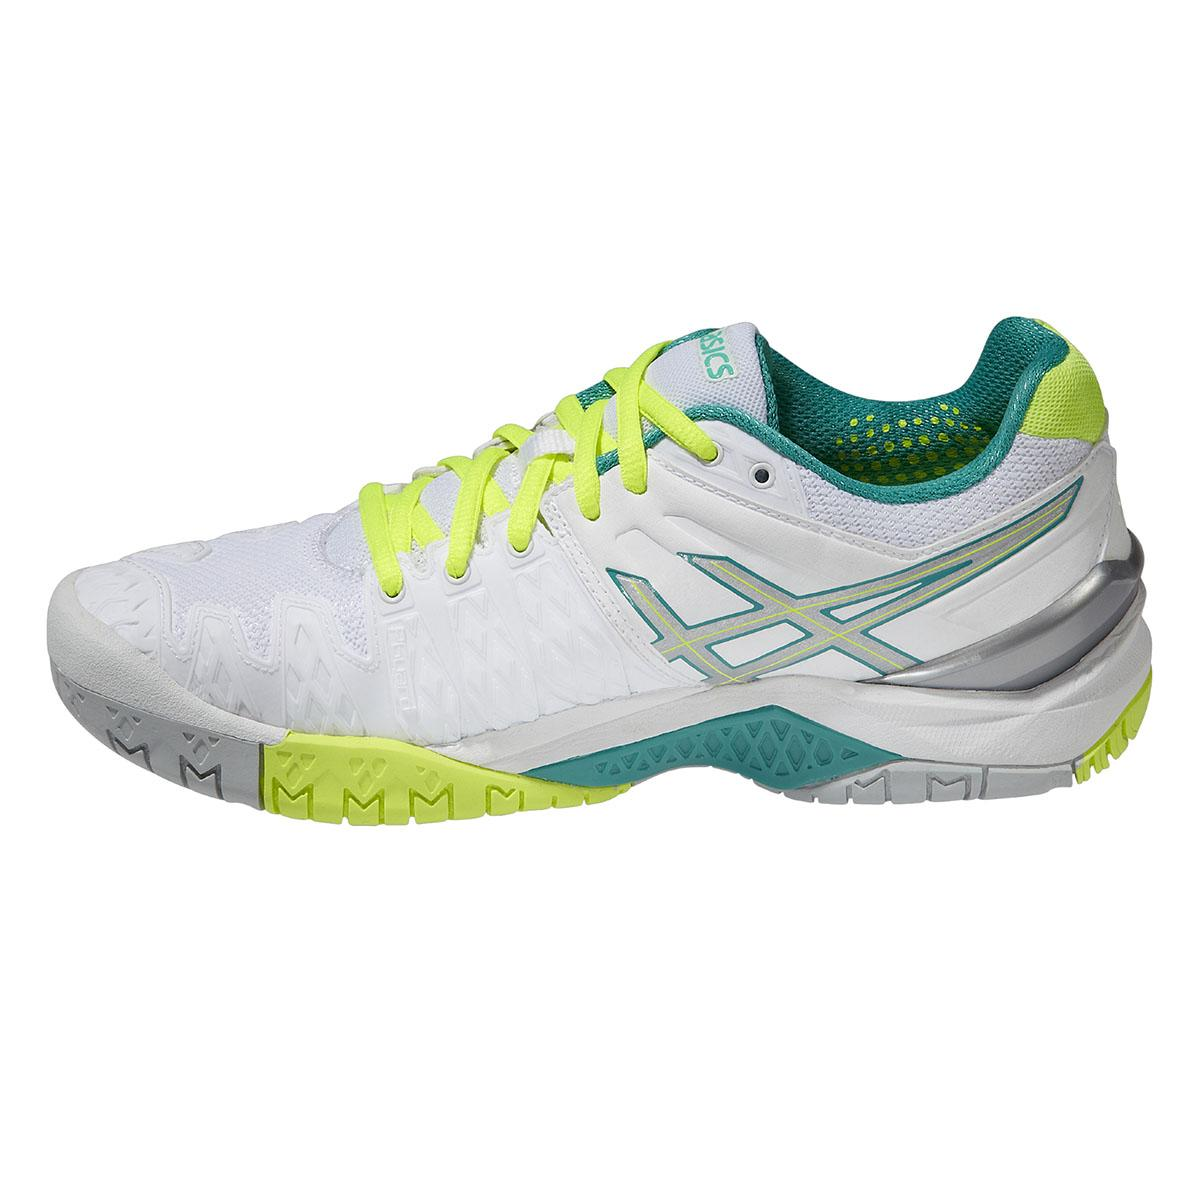 Asics Womens GEL Resolution 6 Tennis Shoes - White/Emerald Green